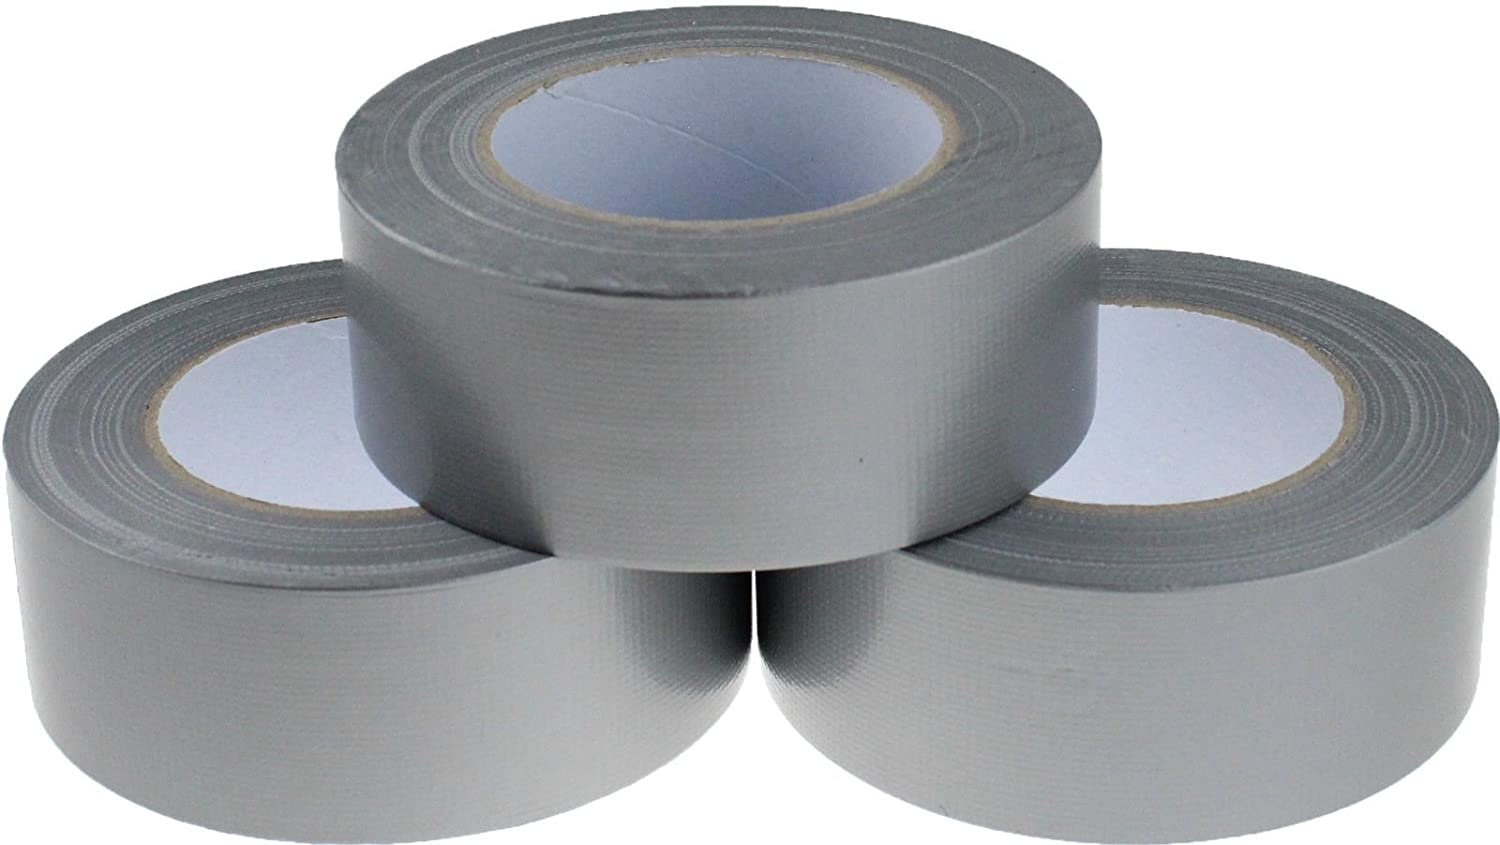 4 x HIGH QUALITY SILVER GAFFER DUCT TAPE ROLLS ☆ SIZE 48mm x 50m ☆ QUALITY PACKING PARCEL SEALING ☆ FAST DELIVERY ☆